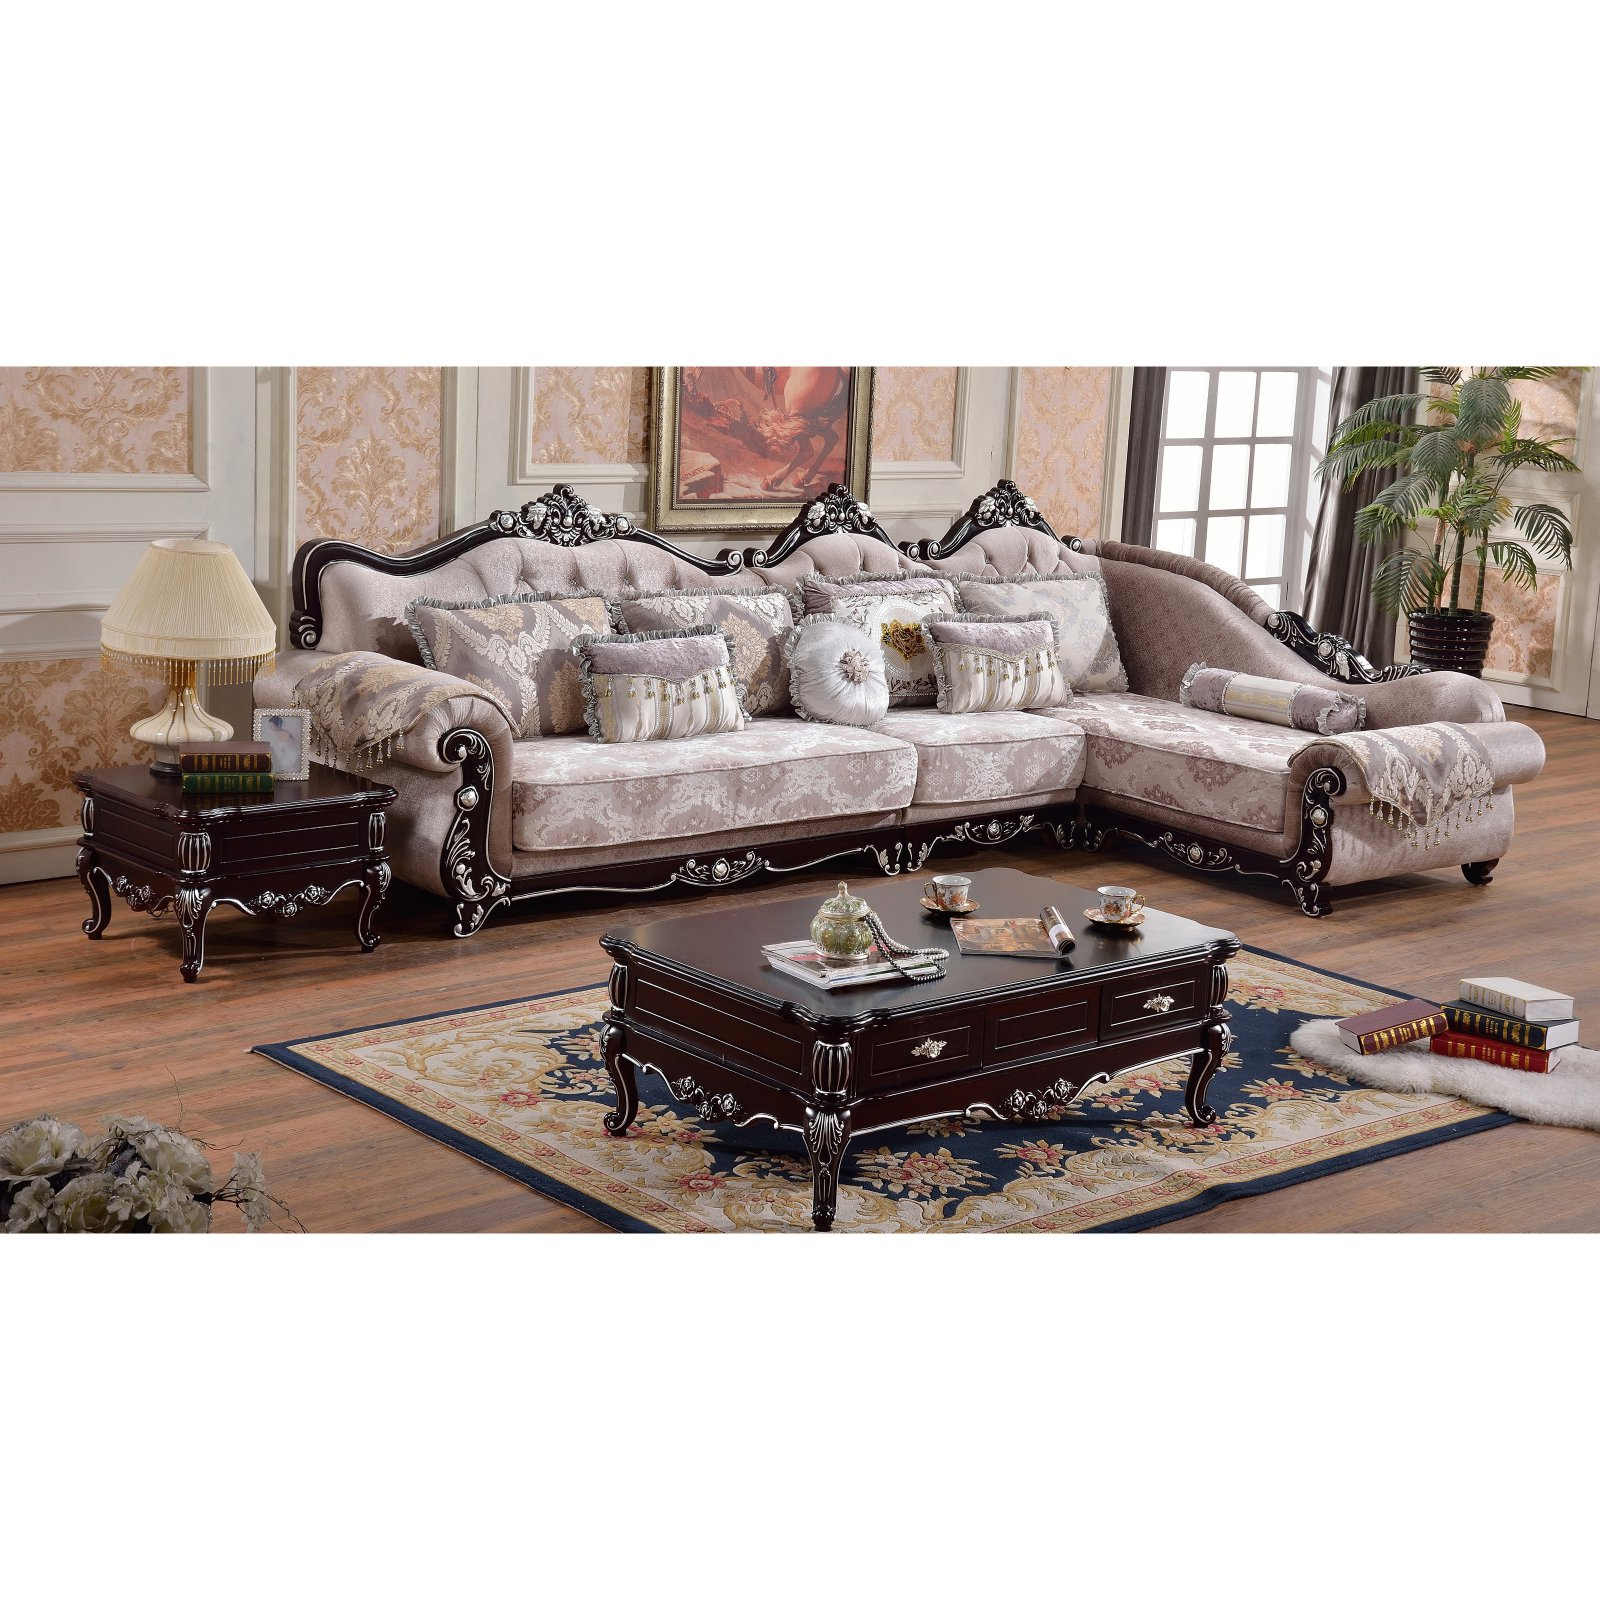 Meridian Furniture Inc Valentino 3 Piece Sectional Sofa with Pillows  sc 1 st  Walmart : 3 piece sectional couch - Sectionals, Sofas & Couches